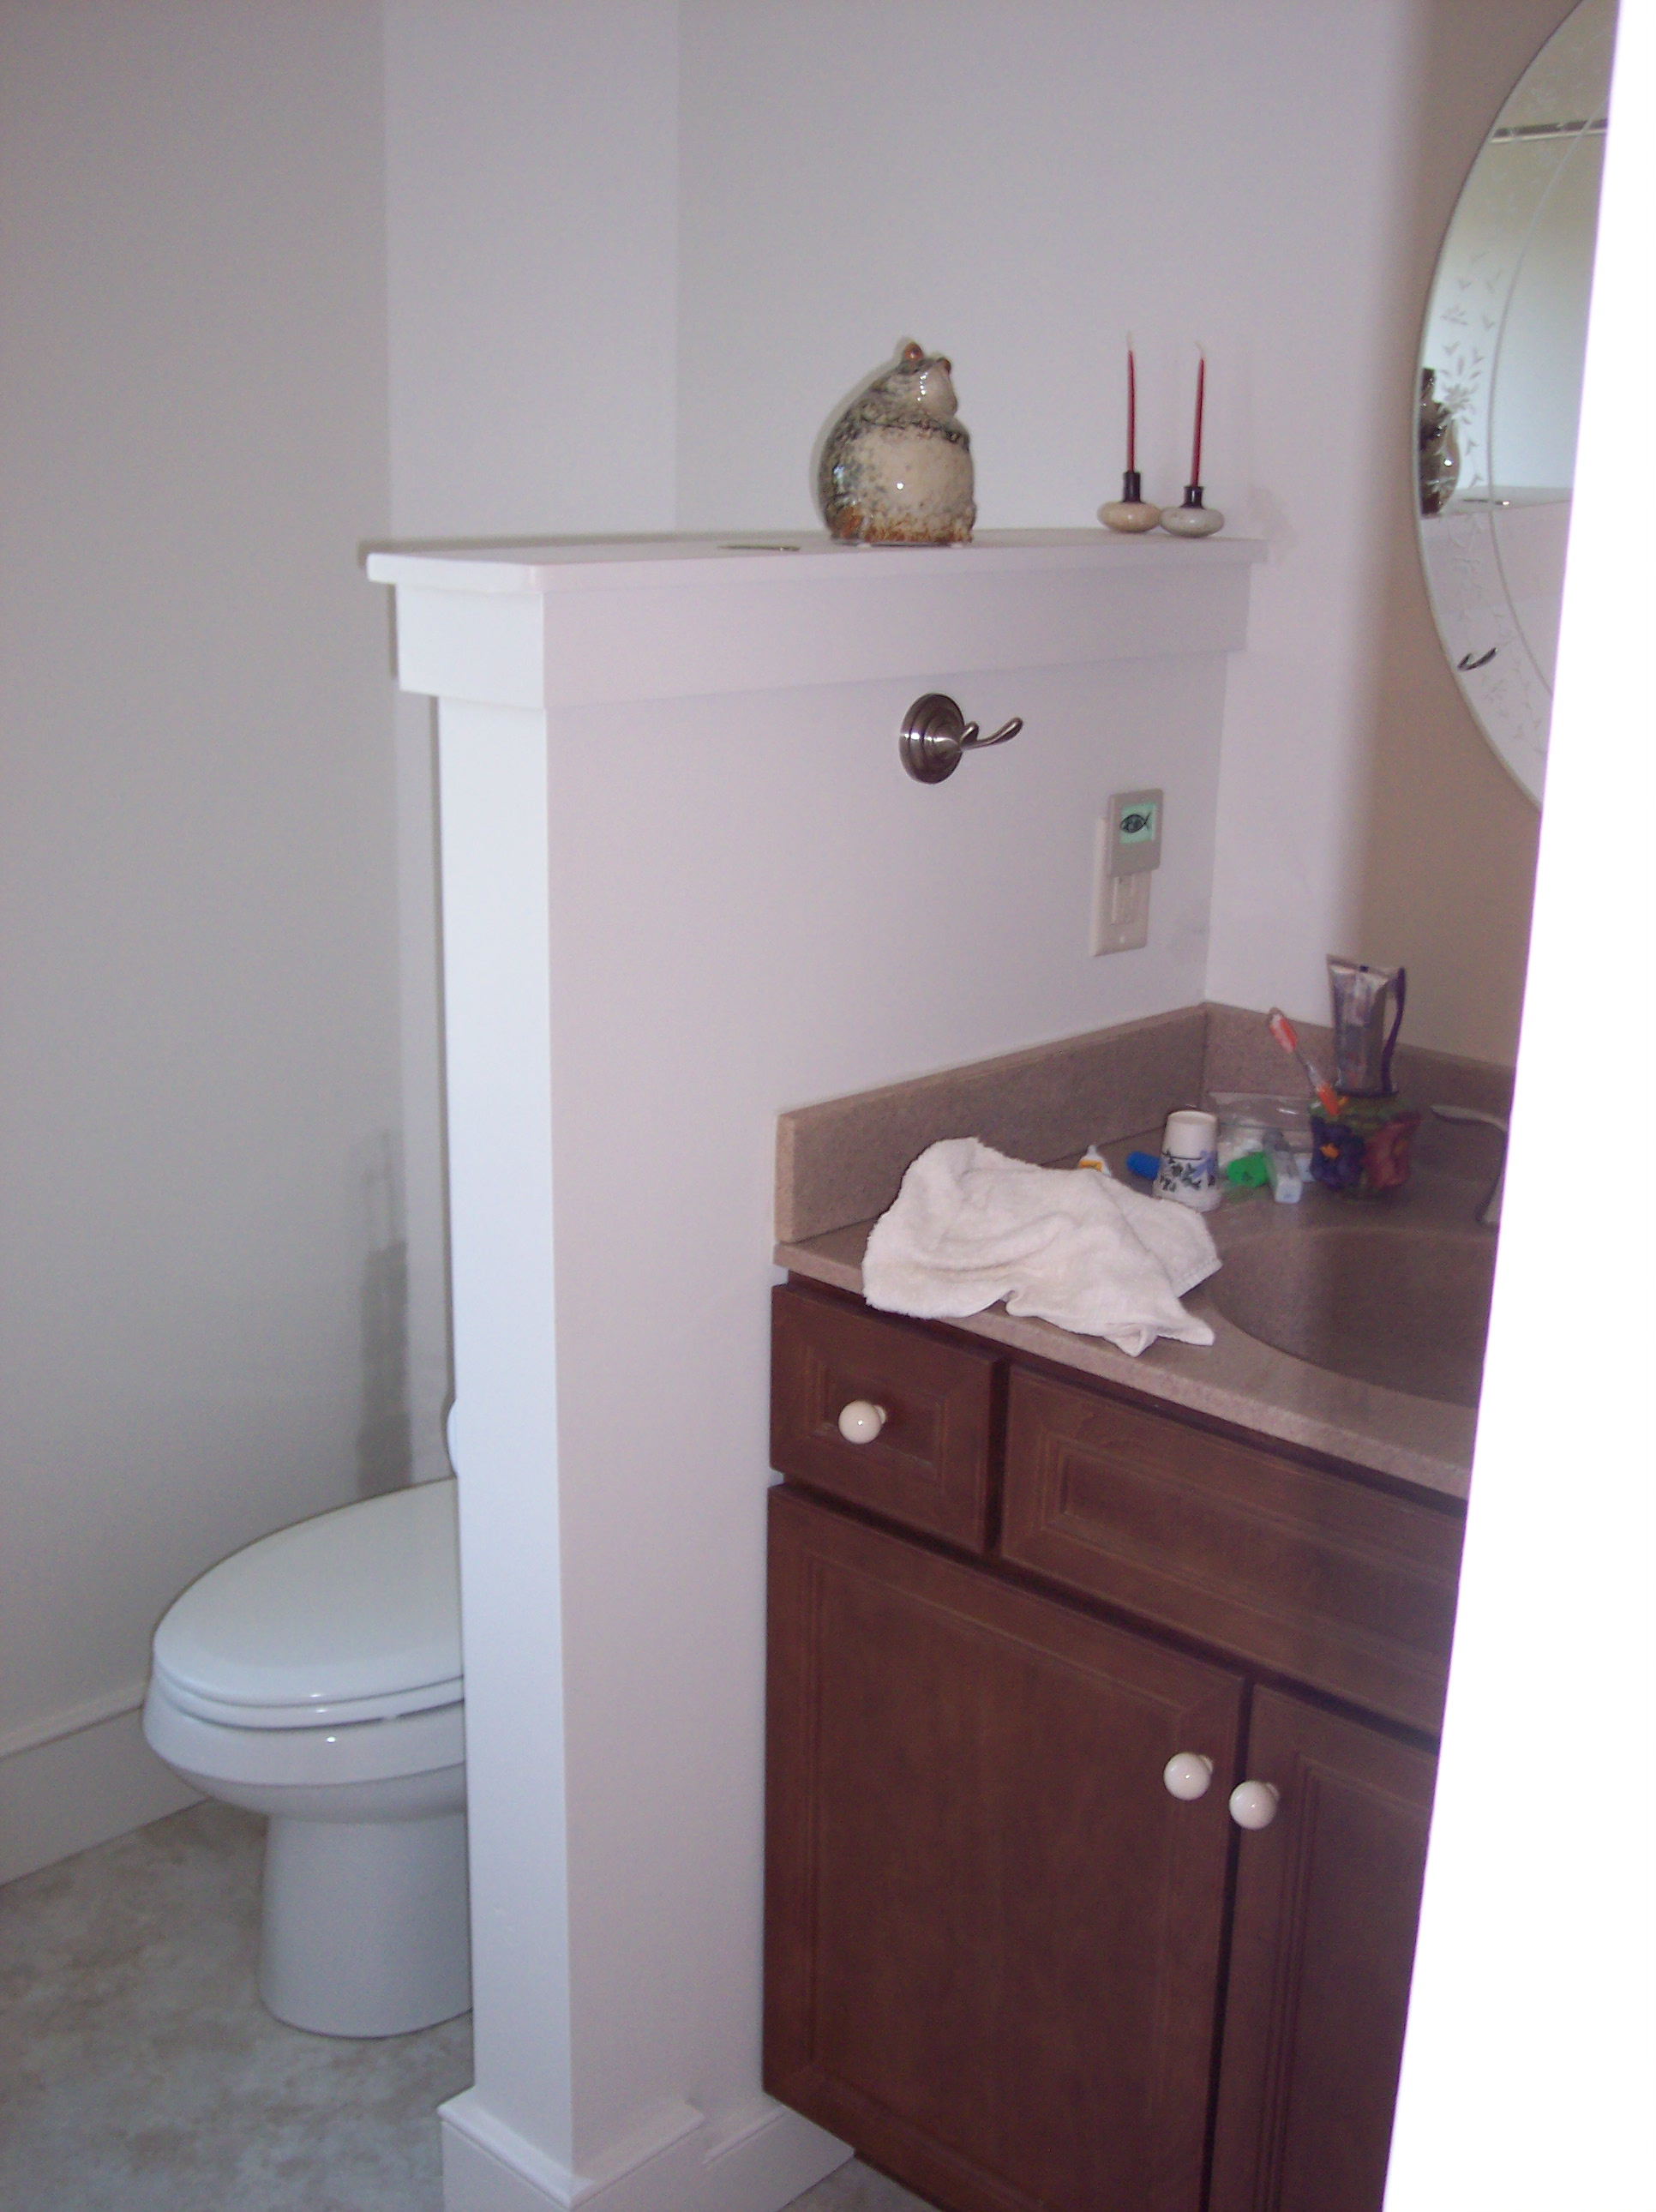 Remodeling ideas for small bathrooms lancaster pa for Remodeling bathroom ideas for small bathrooms